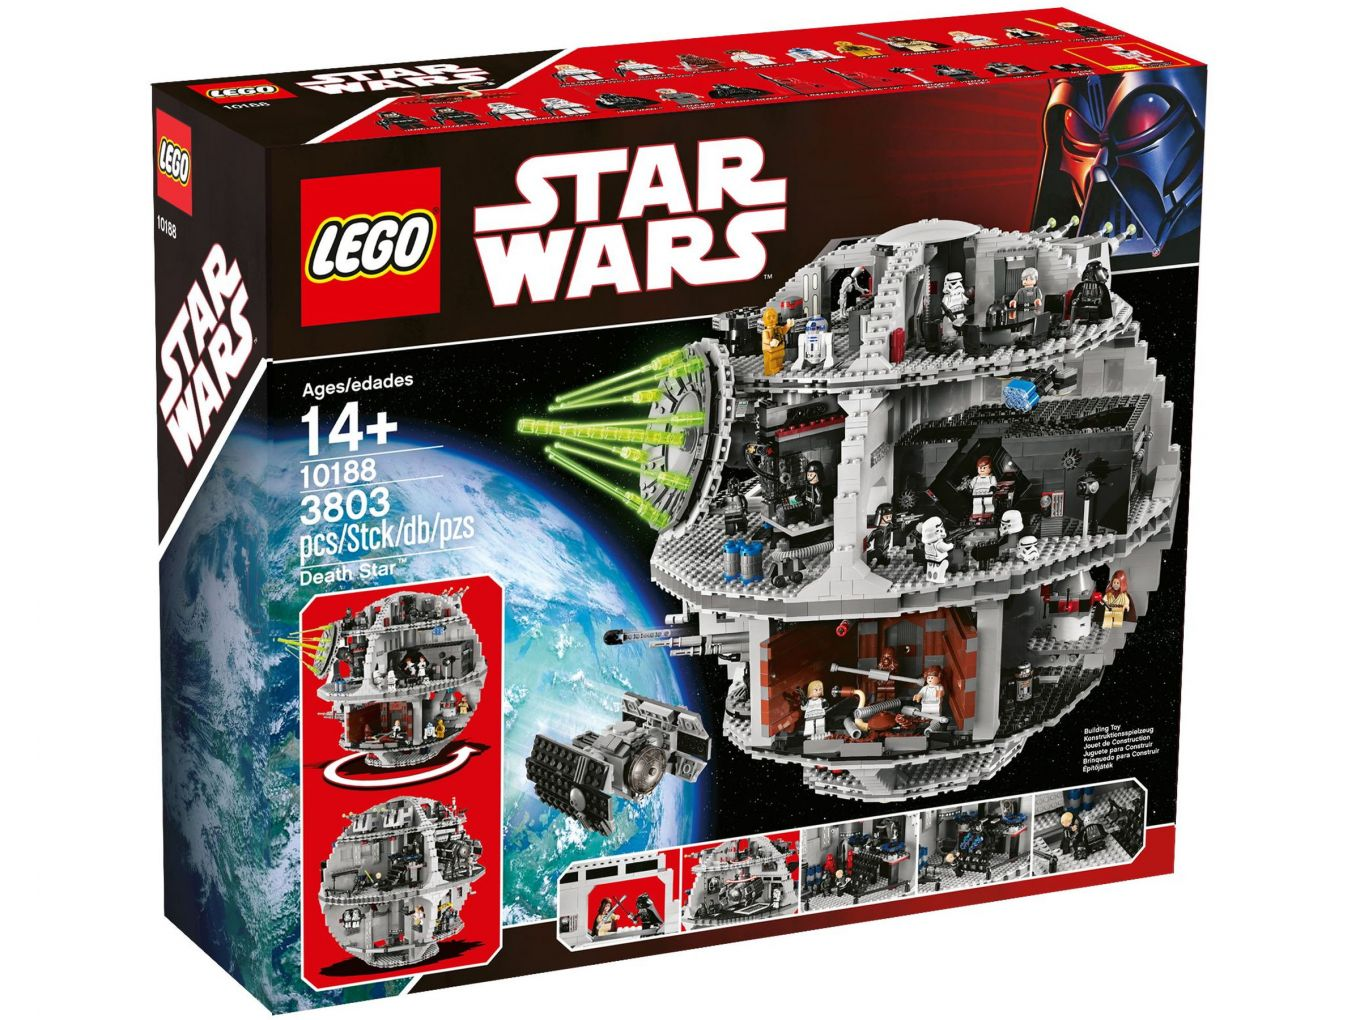 LEGO Star Wars 10188 Death Star